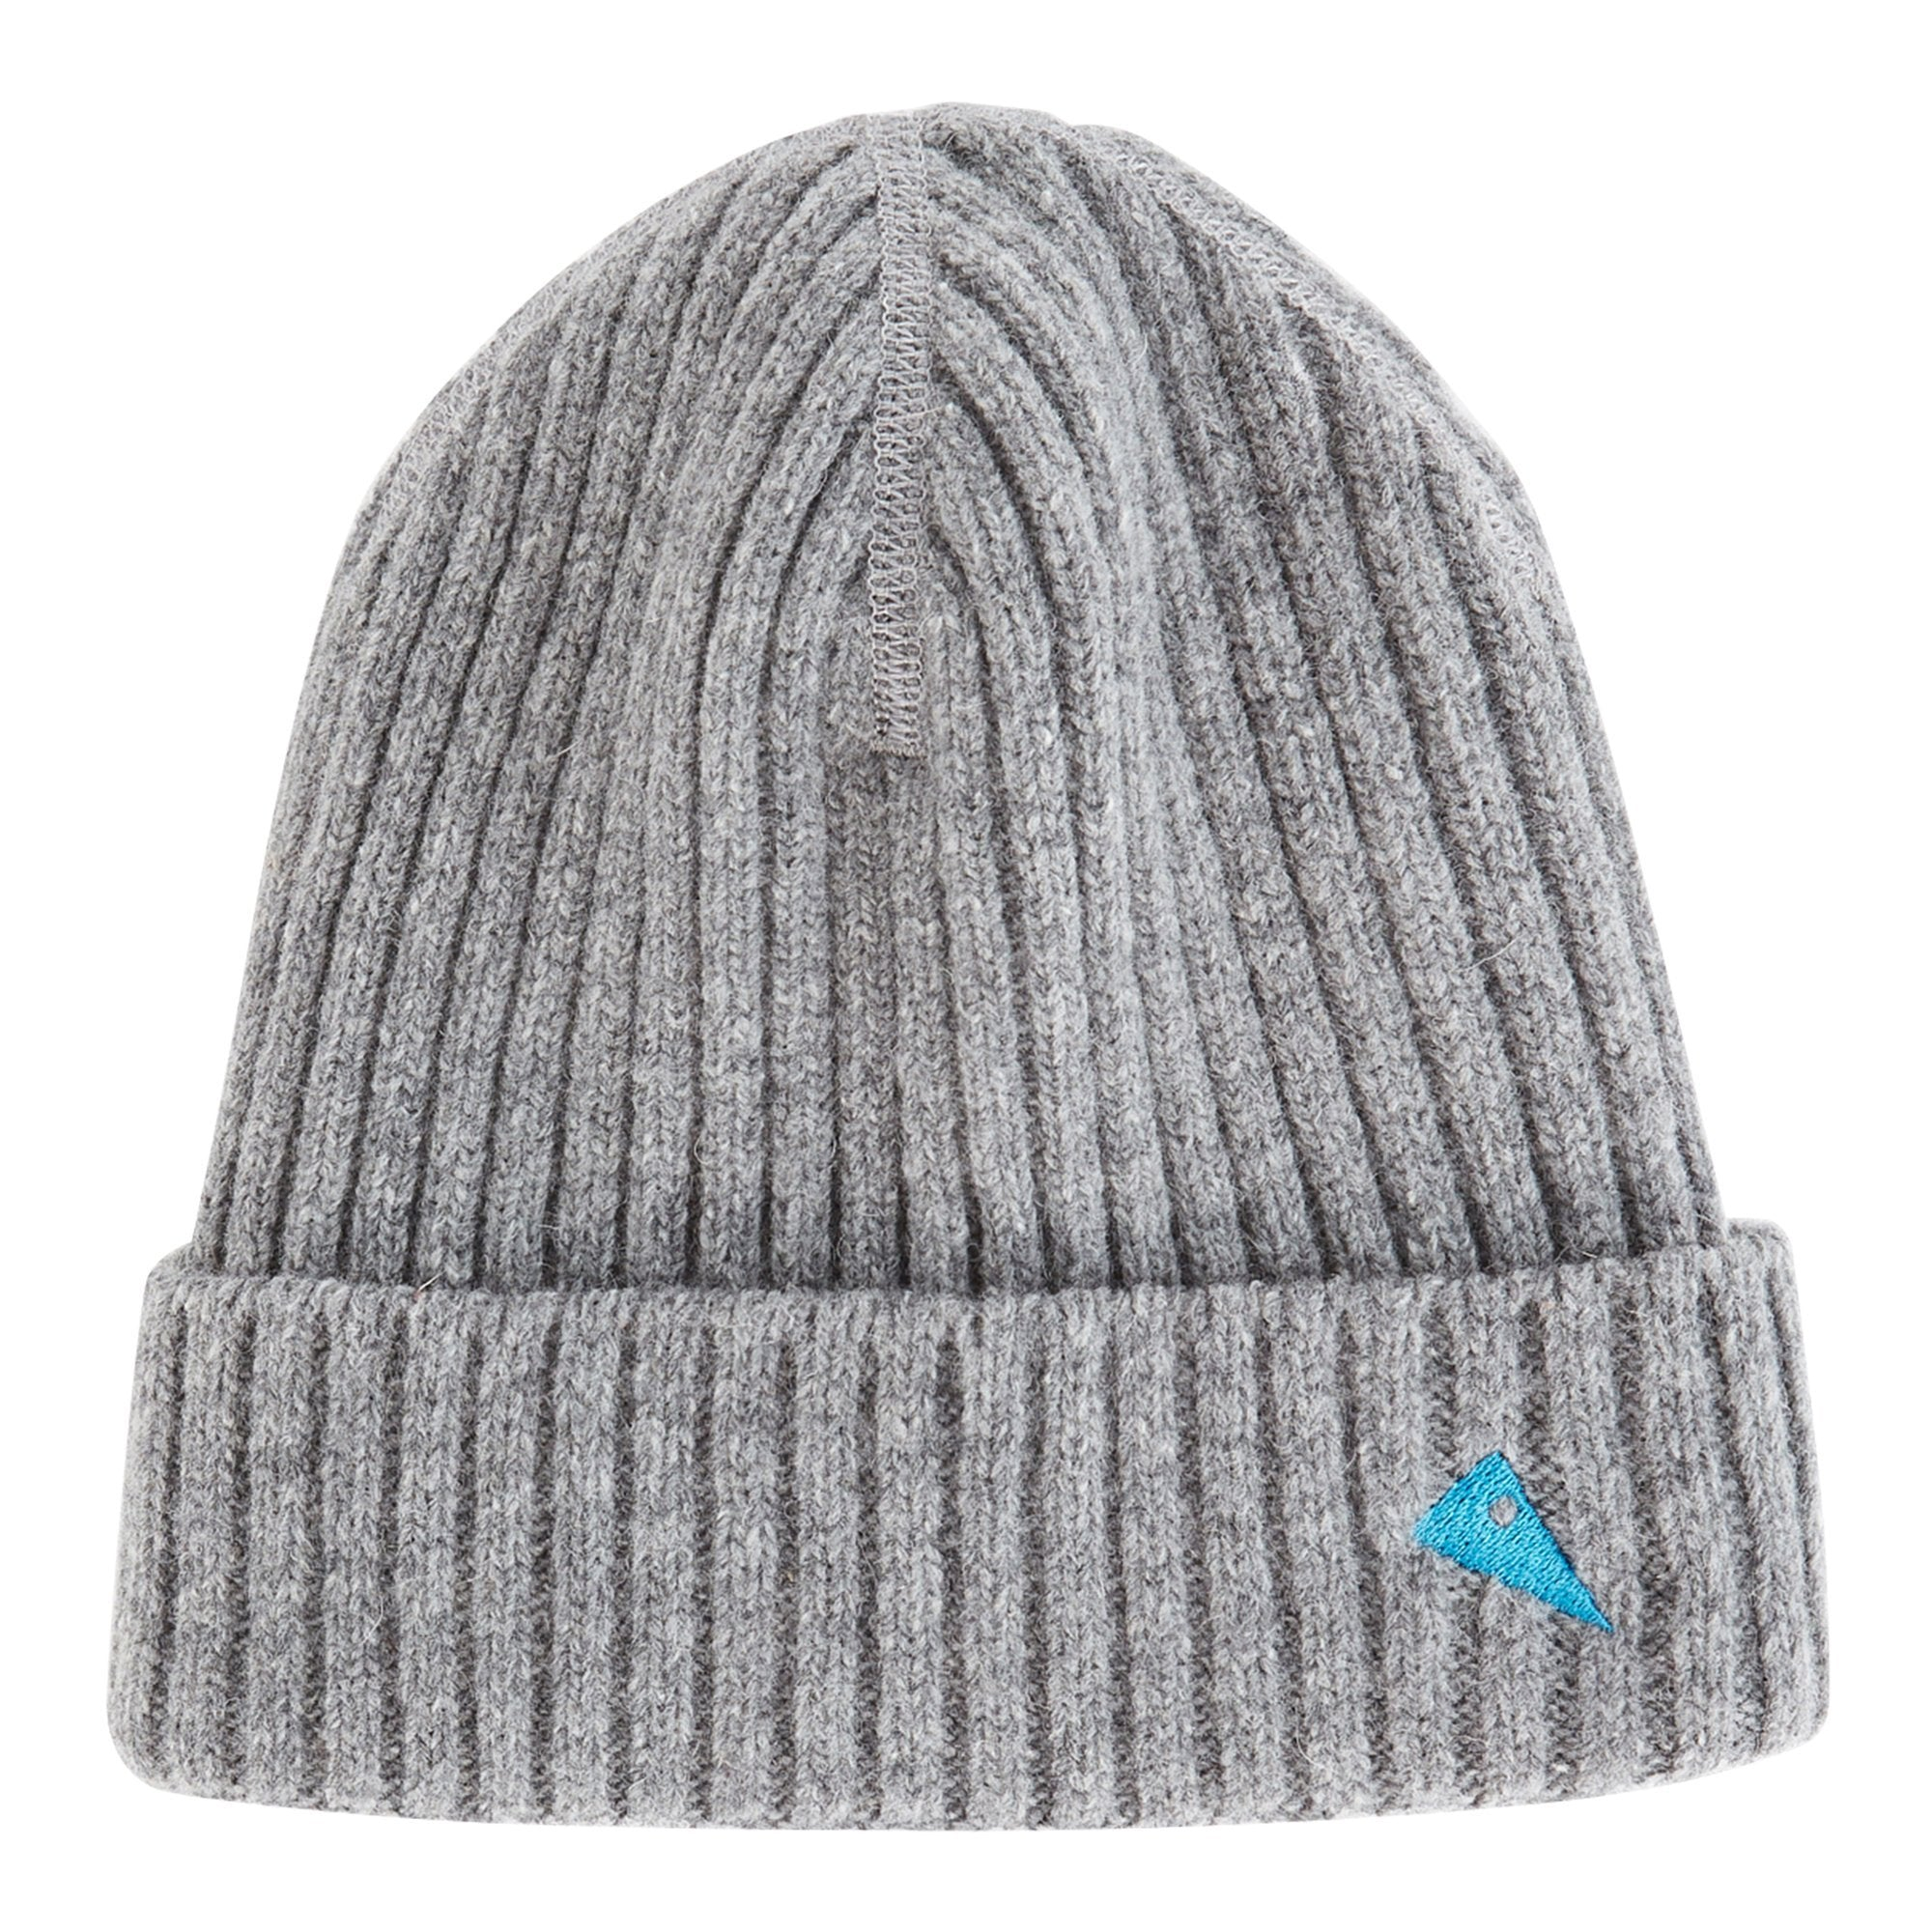 Barre Ribbed Cap - Light Grey - Unisex - Vindpinad